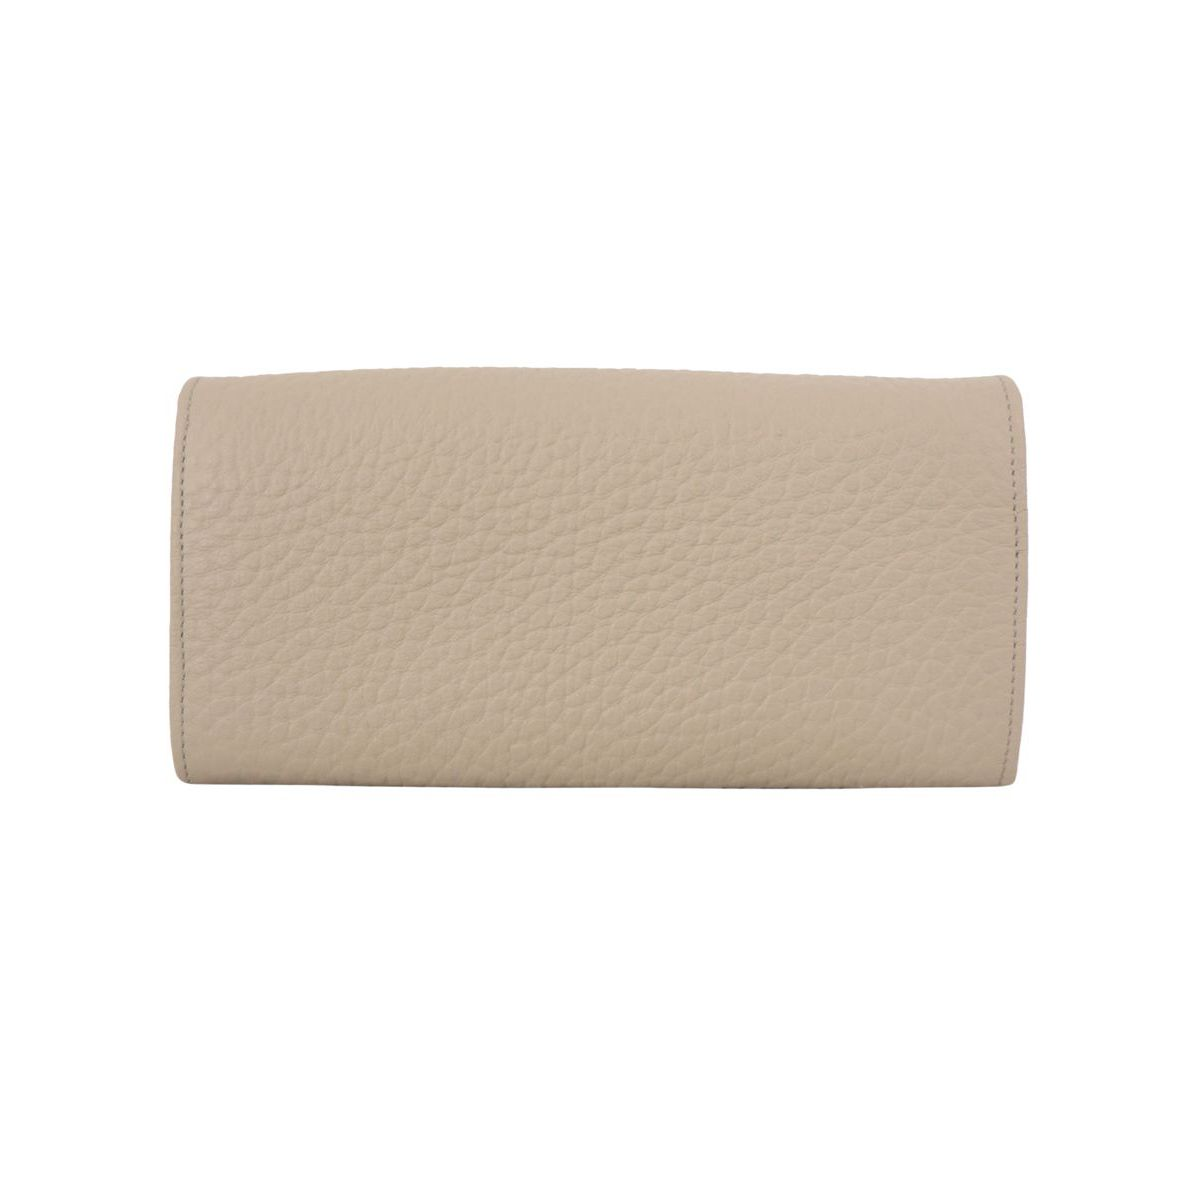 Soft leather wallet Seashell Orciani